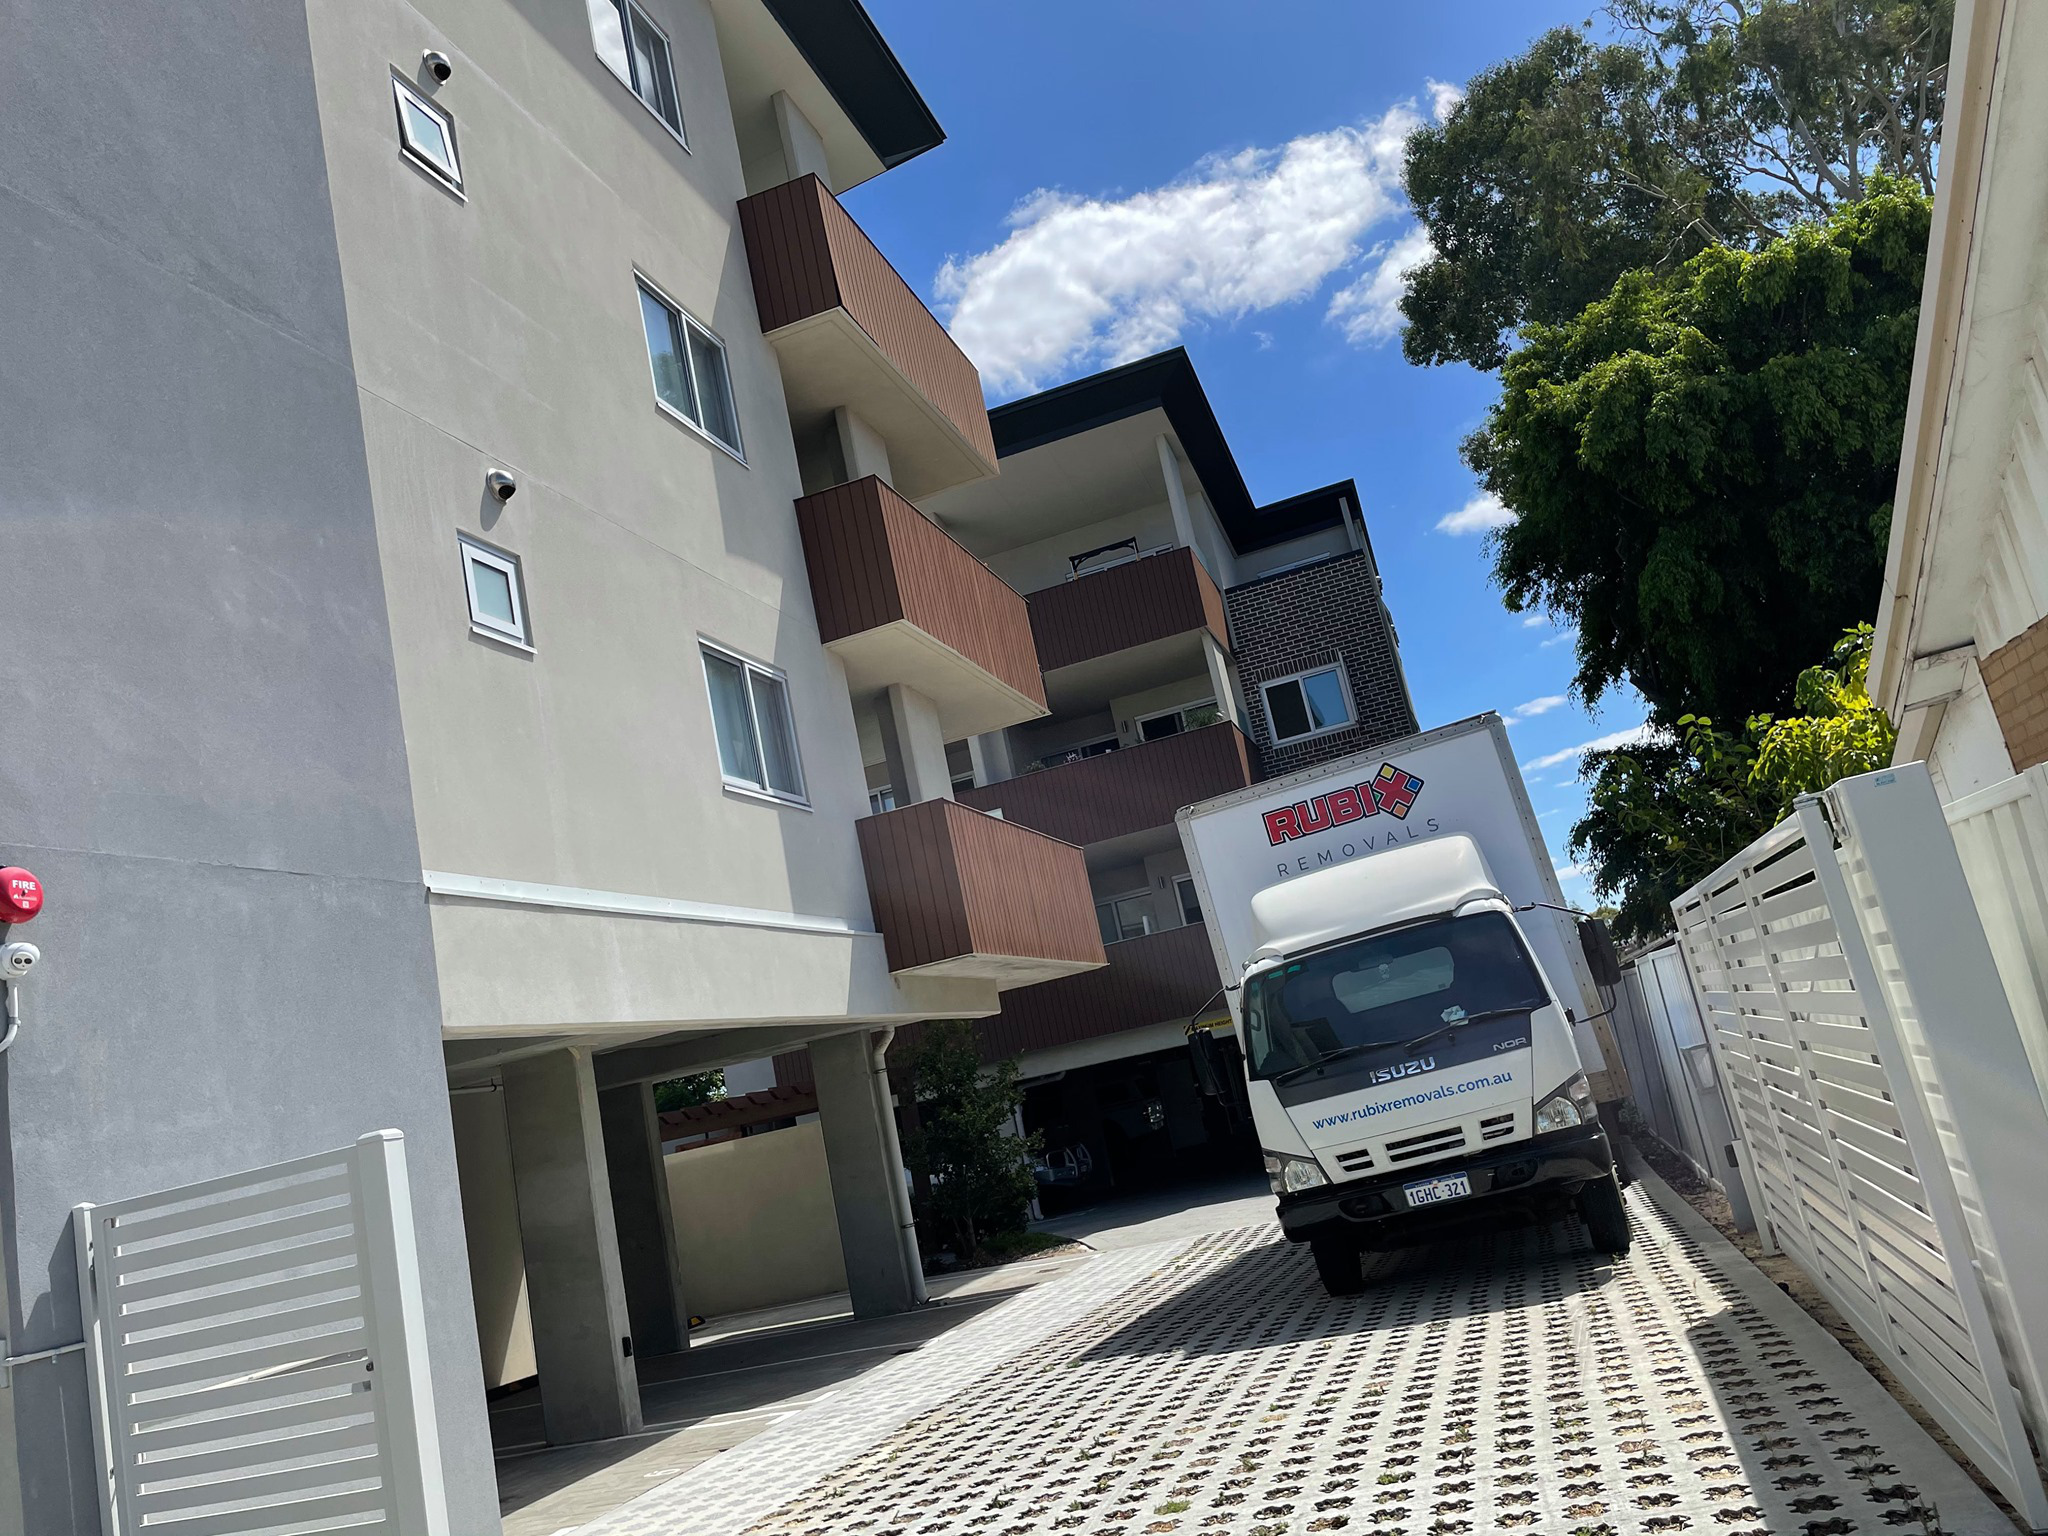 House-removals-perth